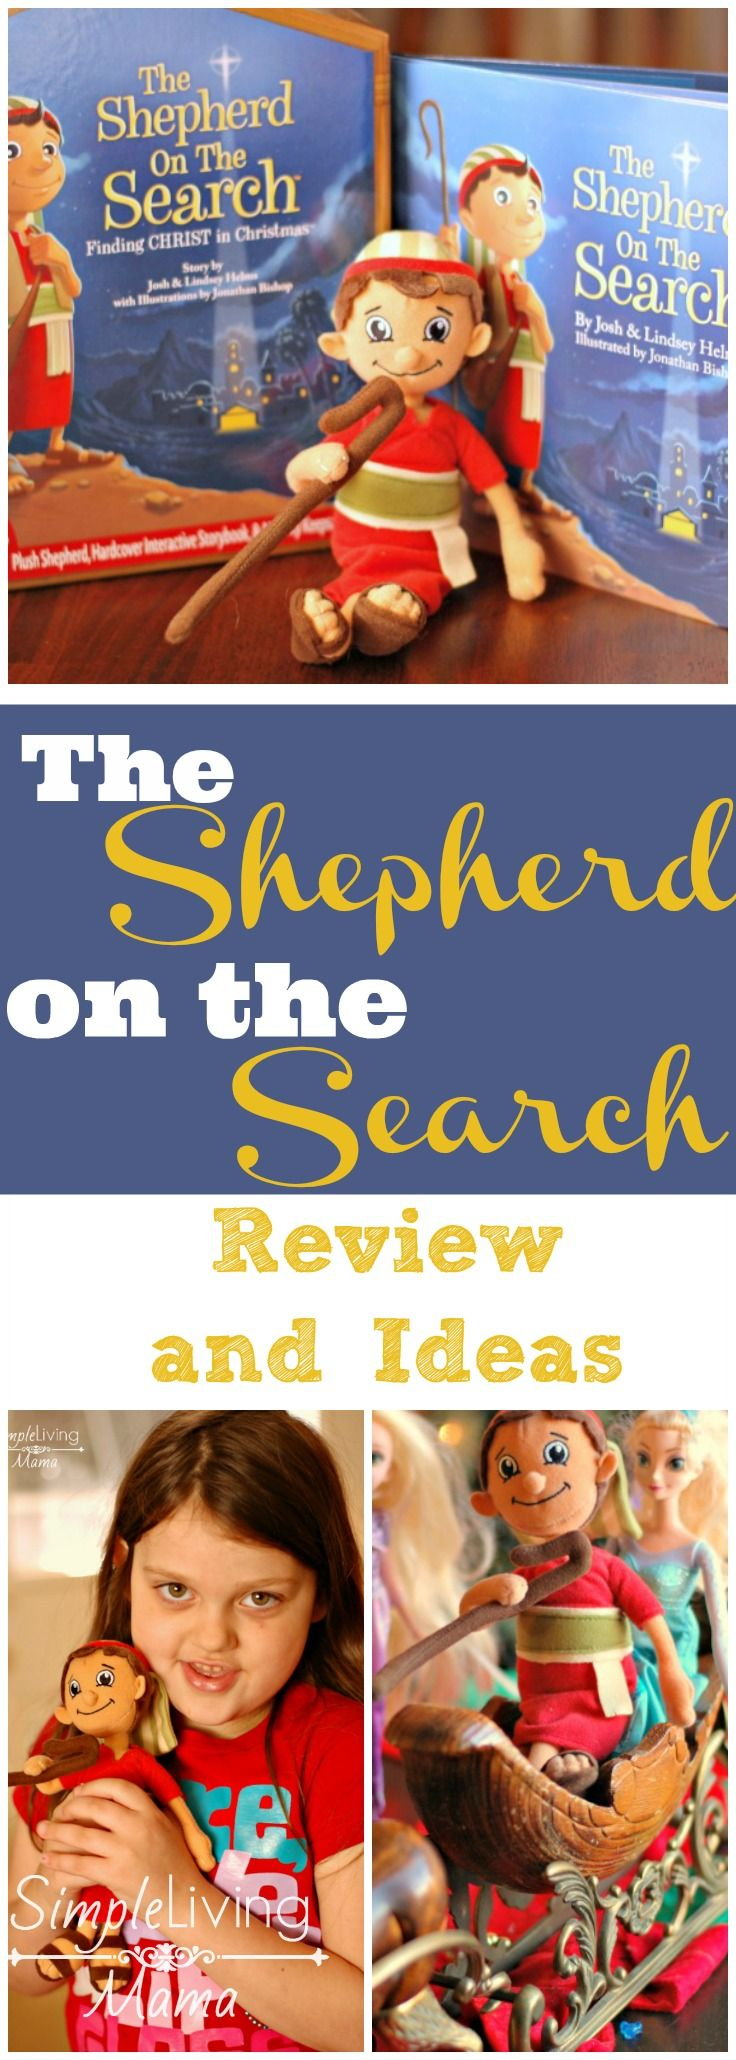 Looking for an alternative to Elf on the Shelf? How about the Shepherd on the Search? Check out  this fun advent idea!